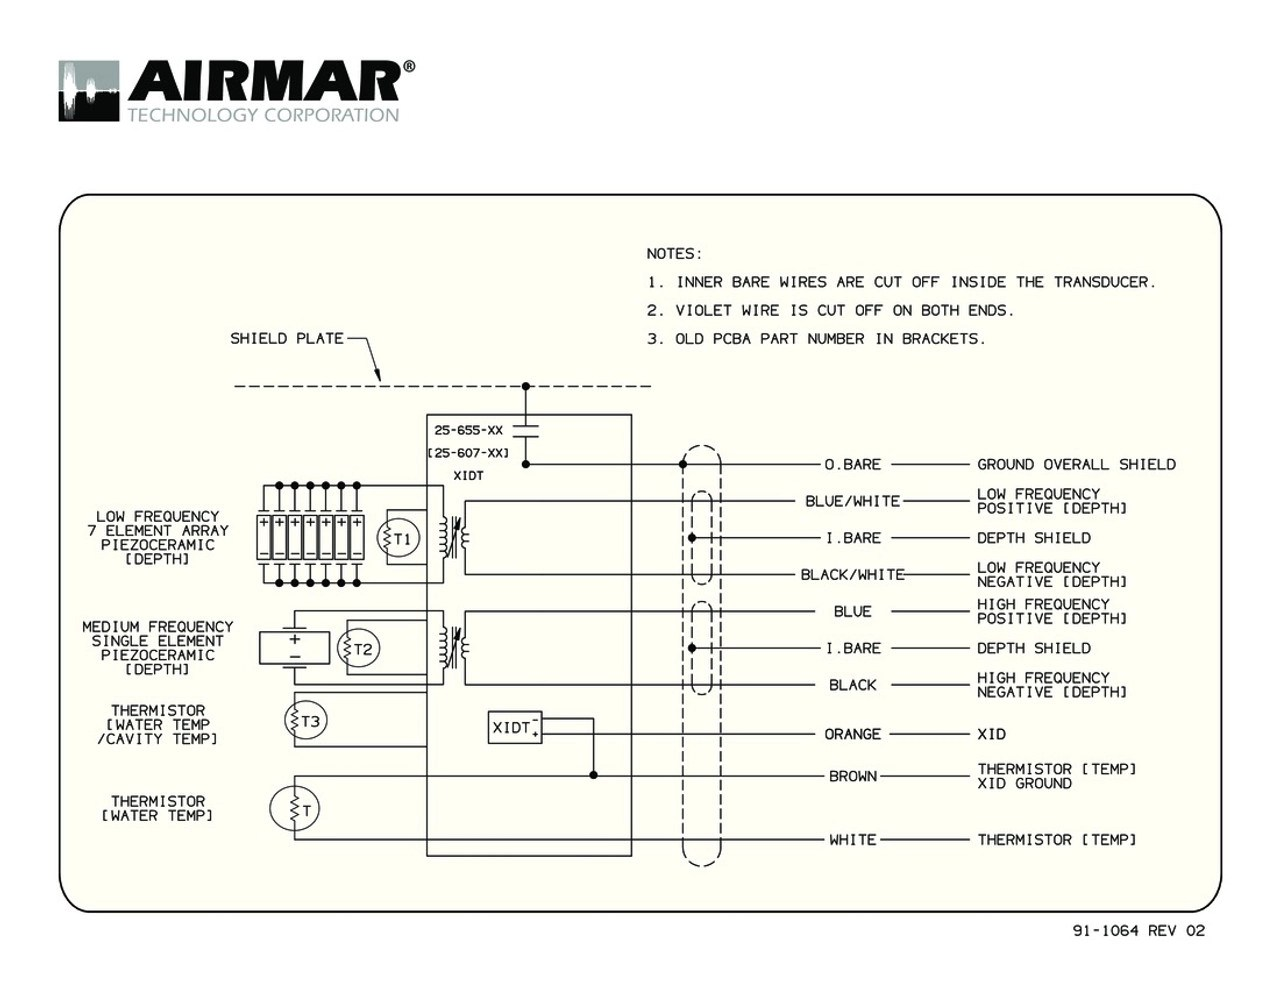 small resolution of airmar wiring diagram tm265lm blue bottle marine airmar transducer wiring diagram tm265c lm with bare wire